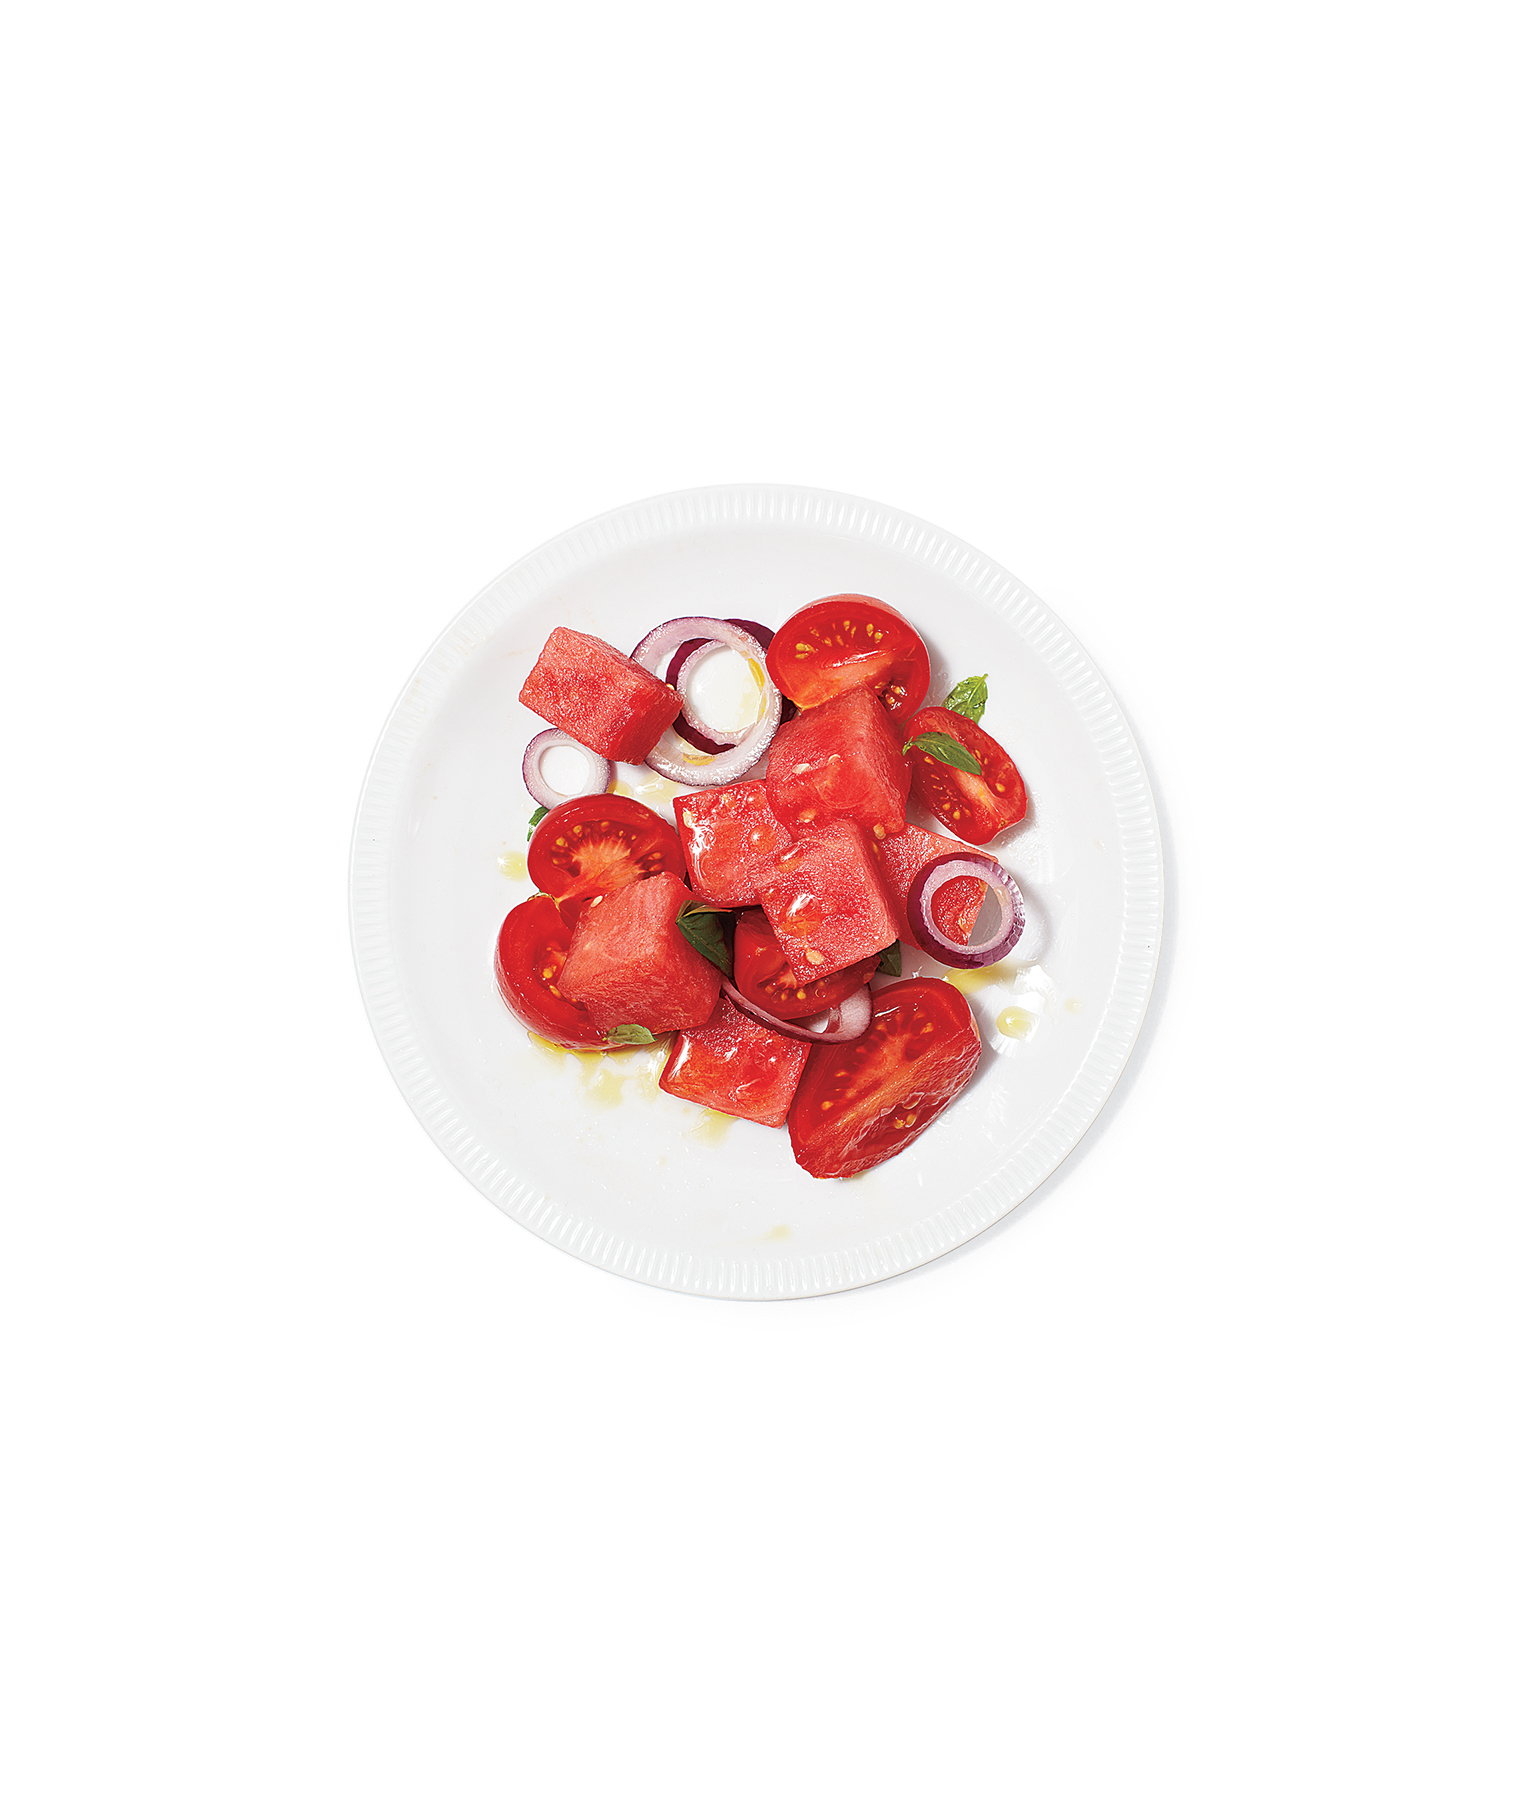 watermelon-tomato-salad